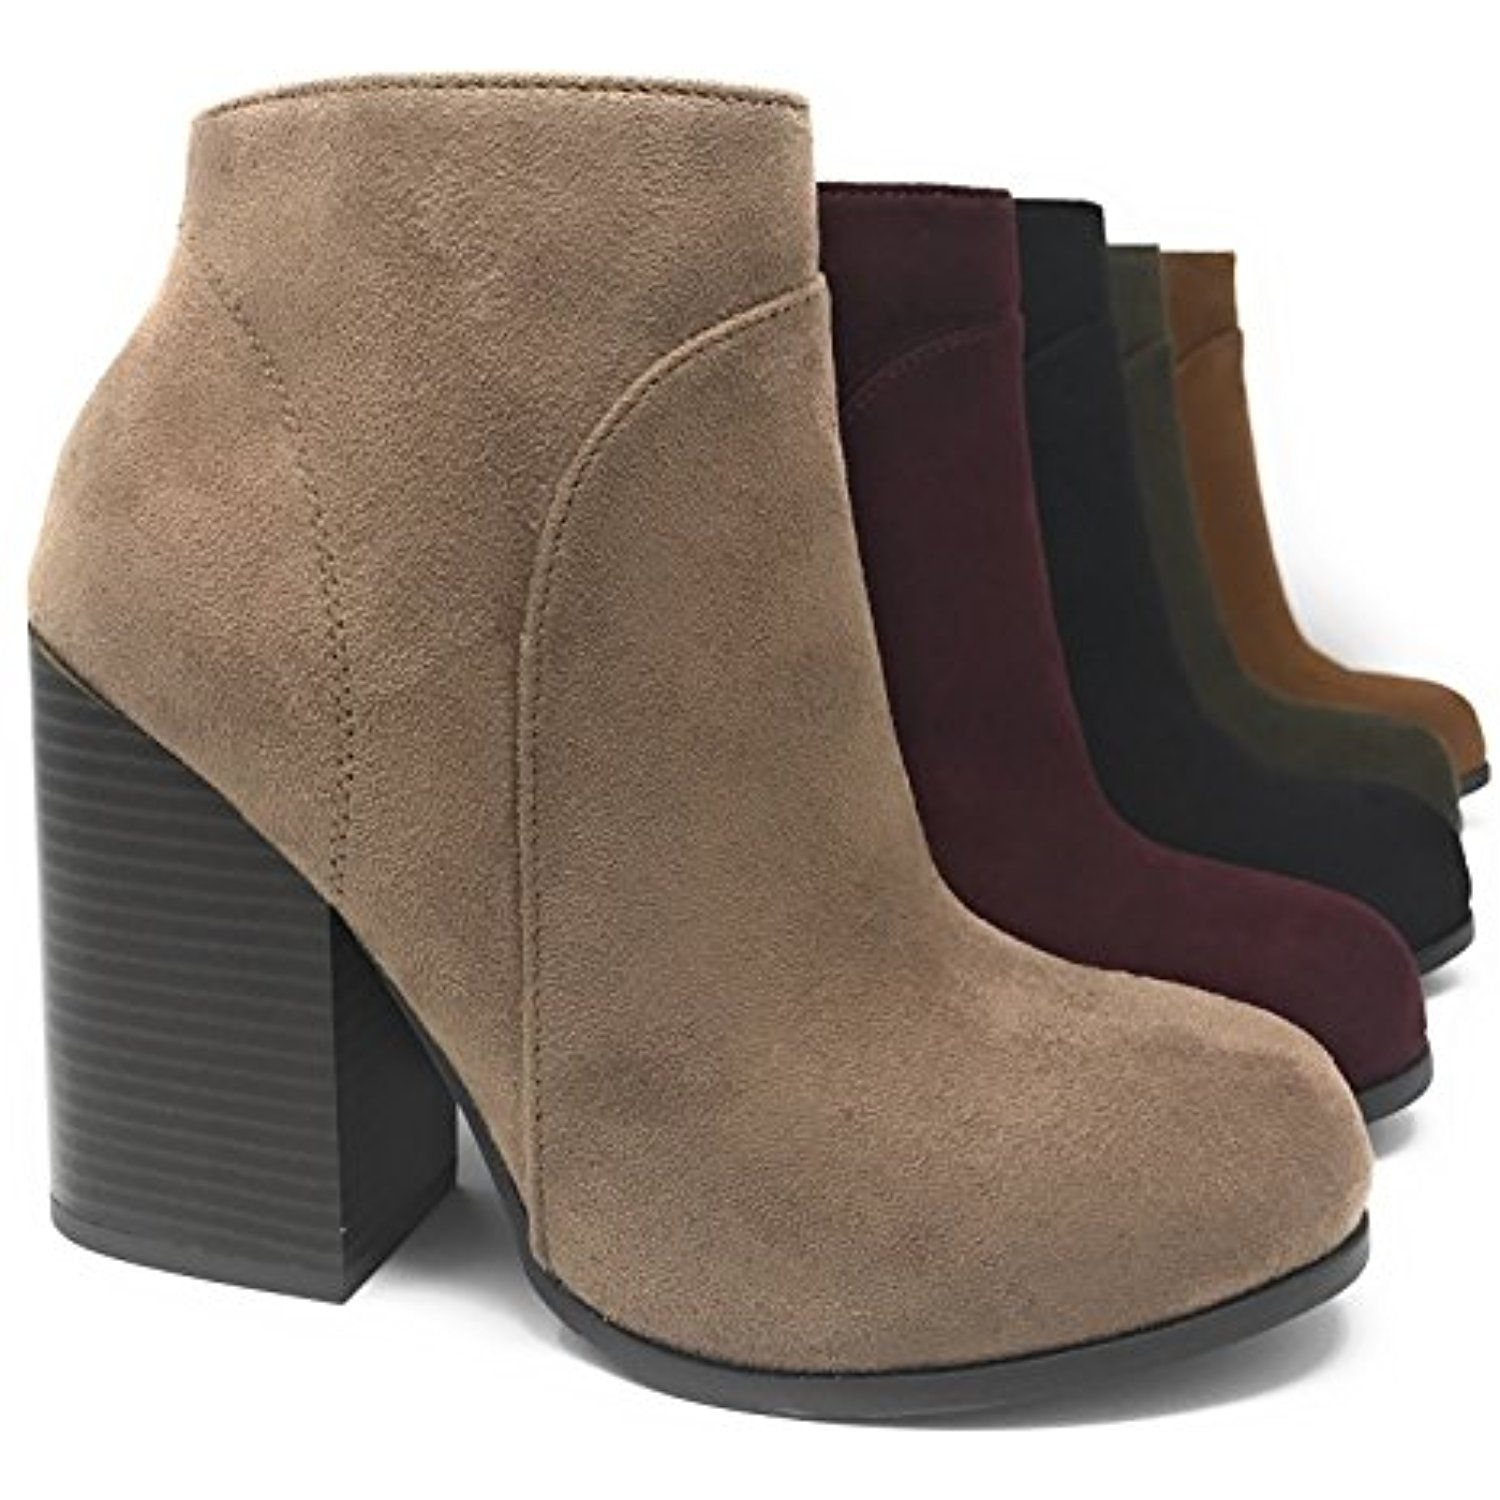 Women's Shoe Faux Suede Stacked High Chunky Heel Ankle Boots